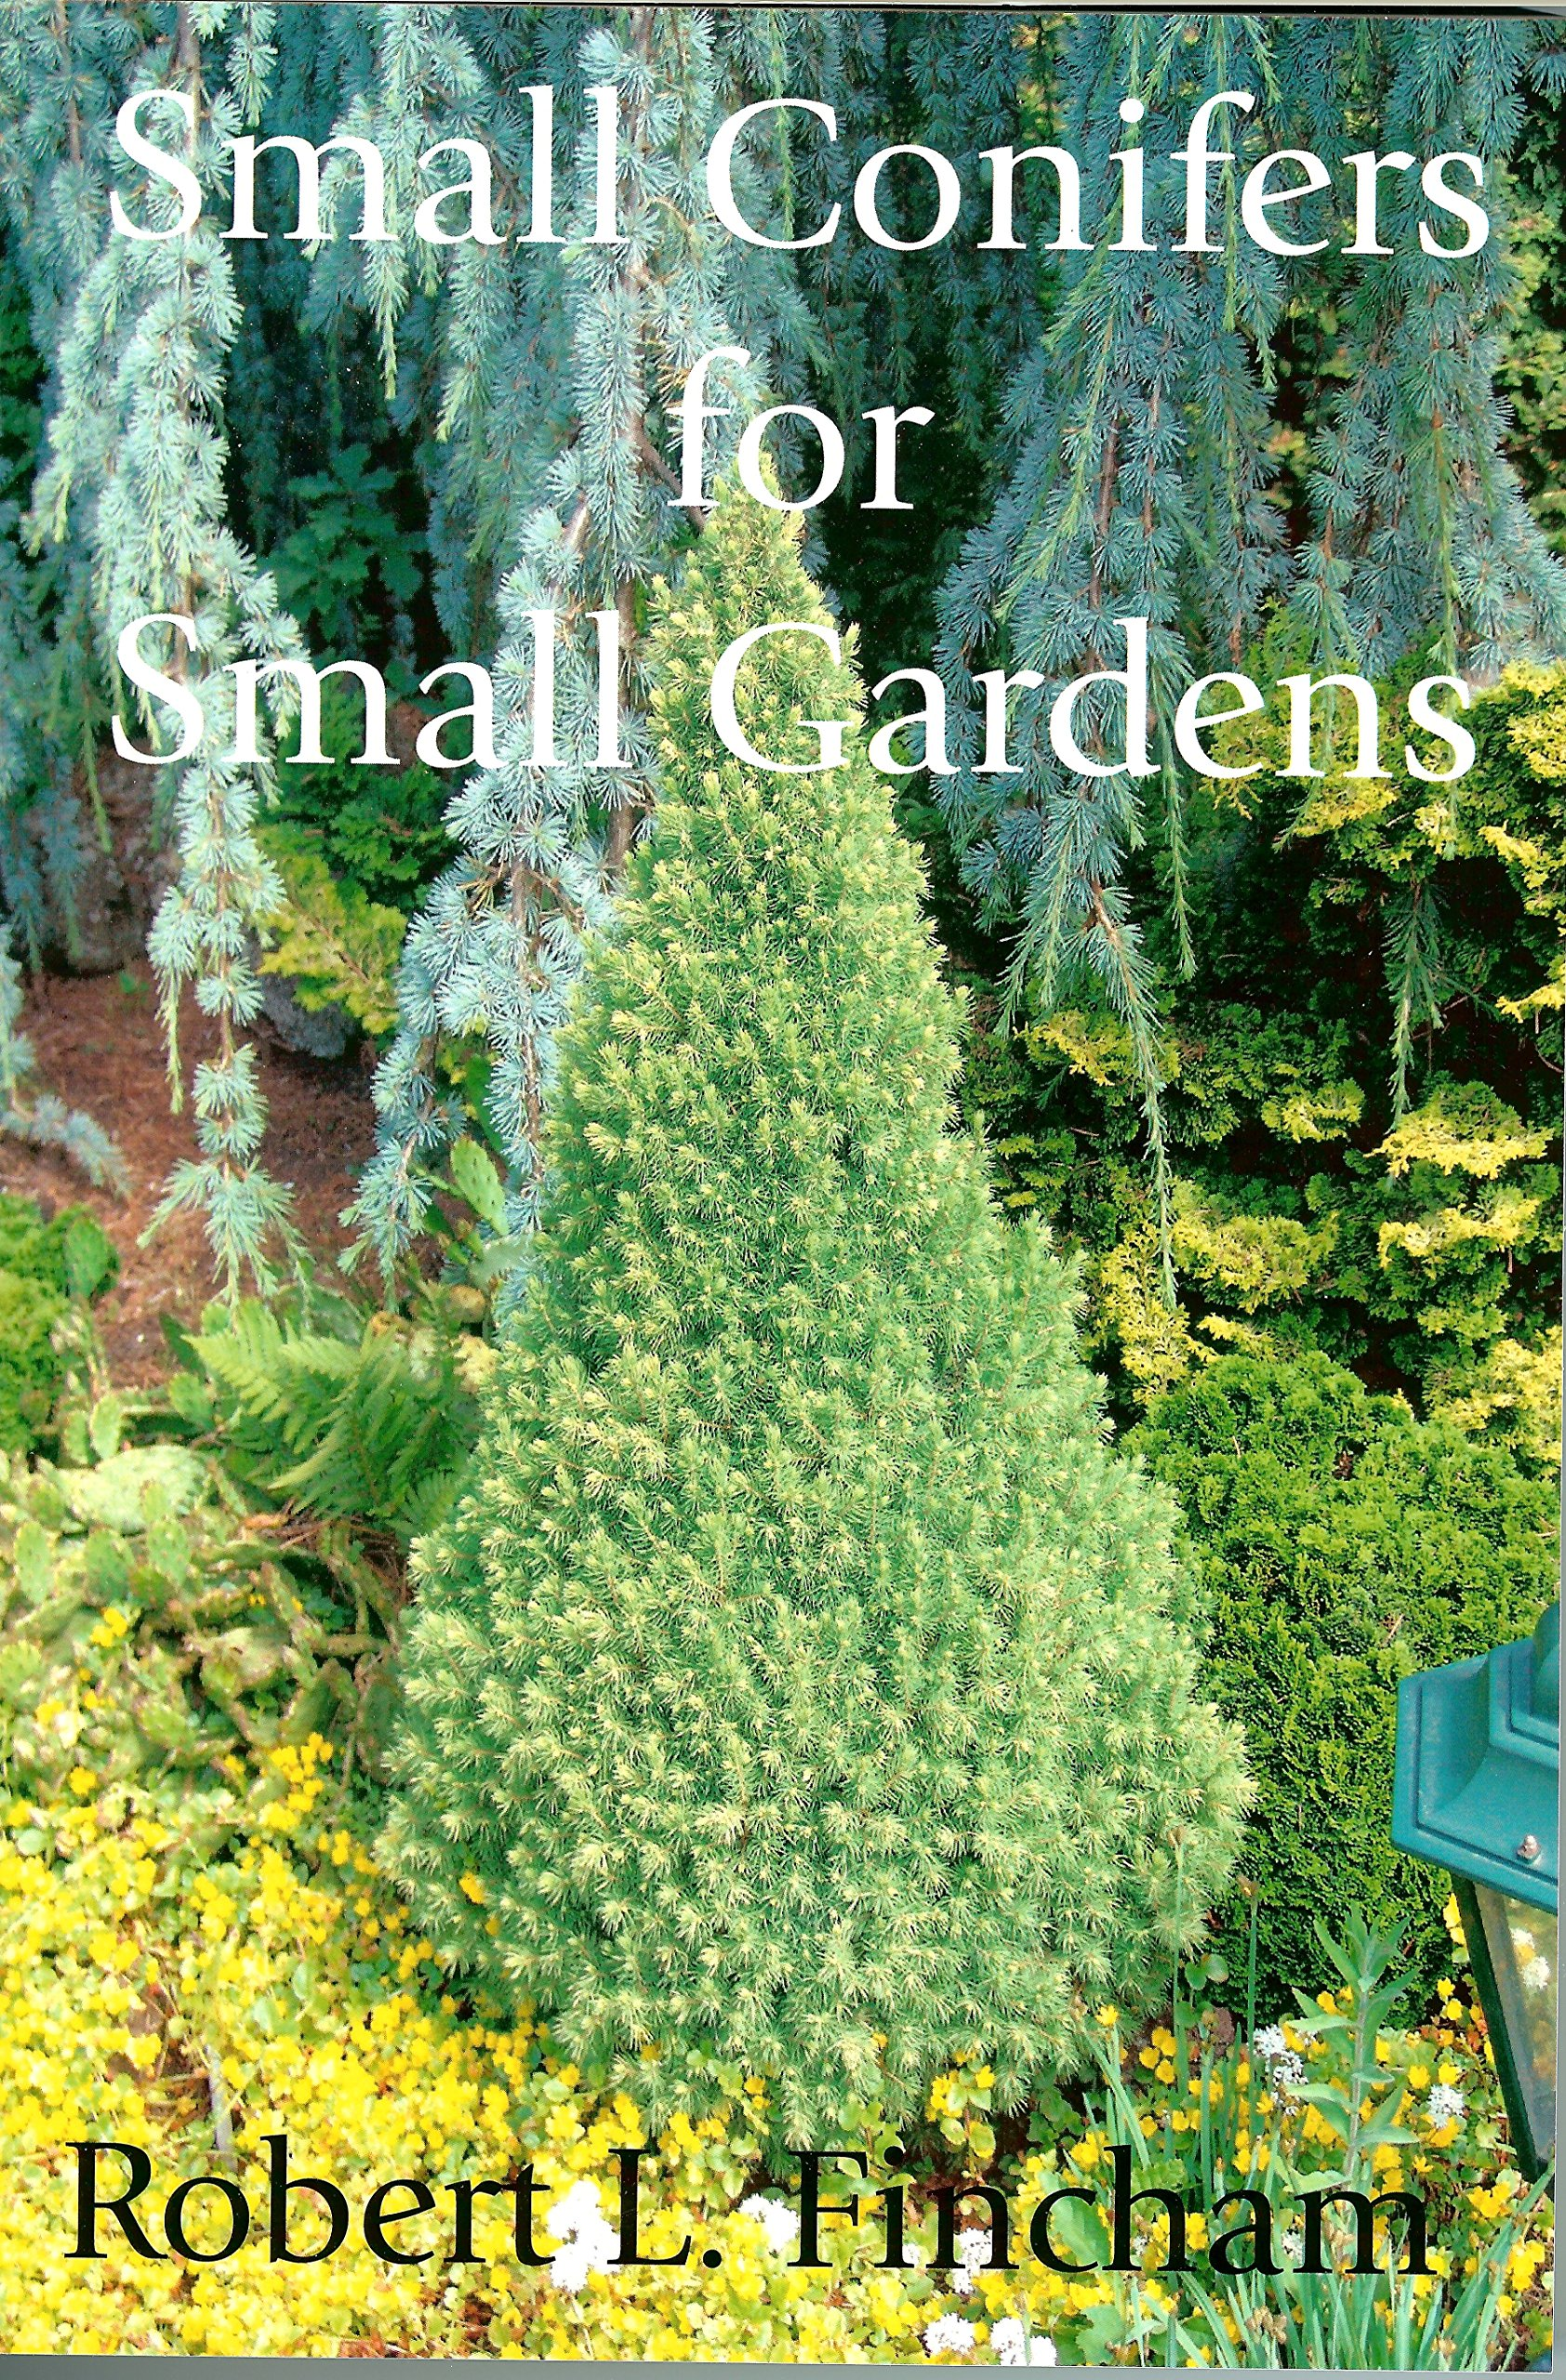 Small Conifers for Small Gardens, Robert L. Fincham